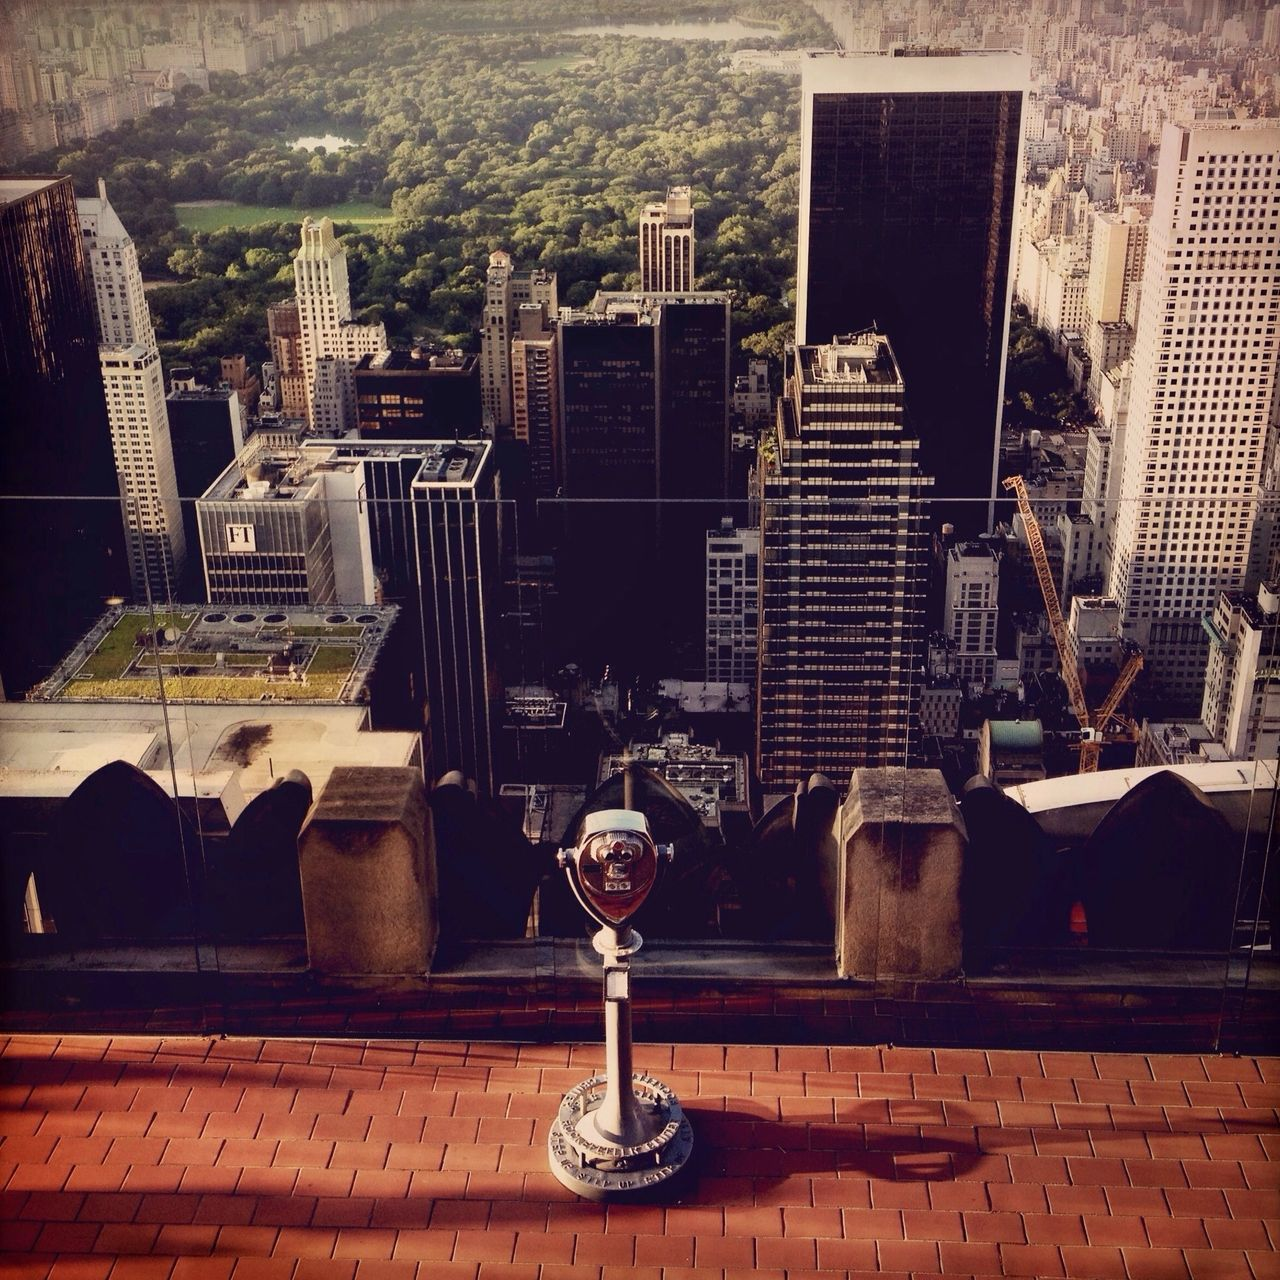 Coin operated binoculars against cityscape